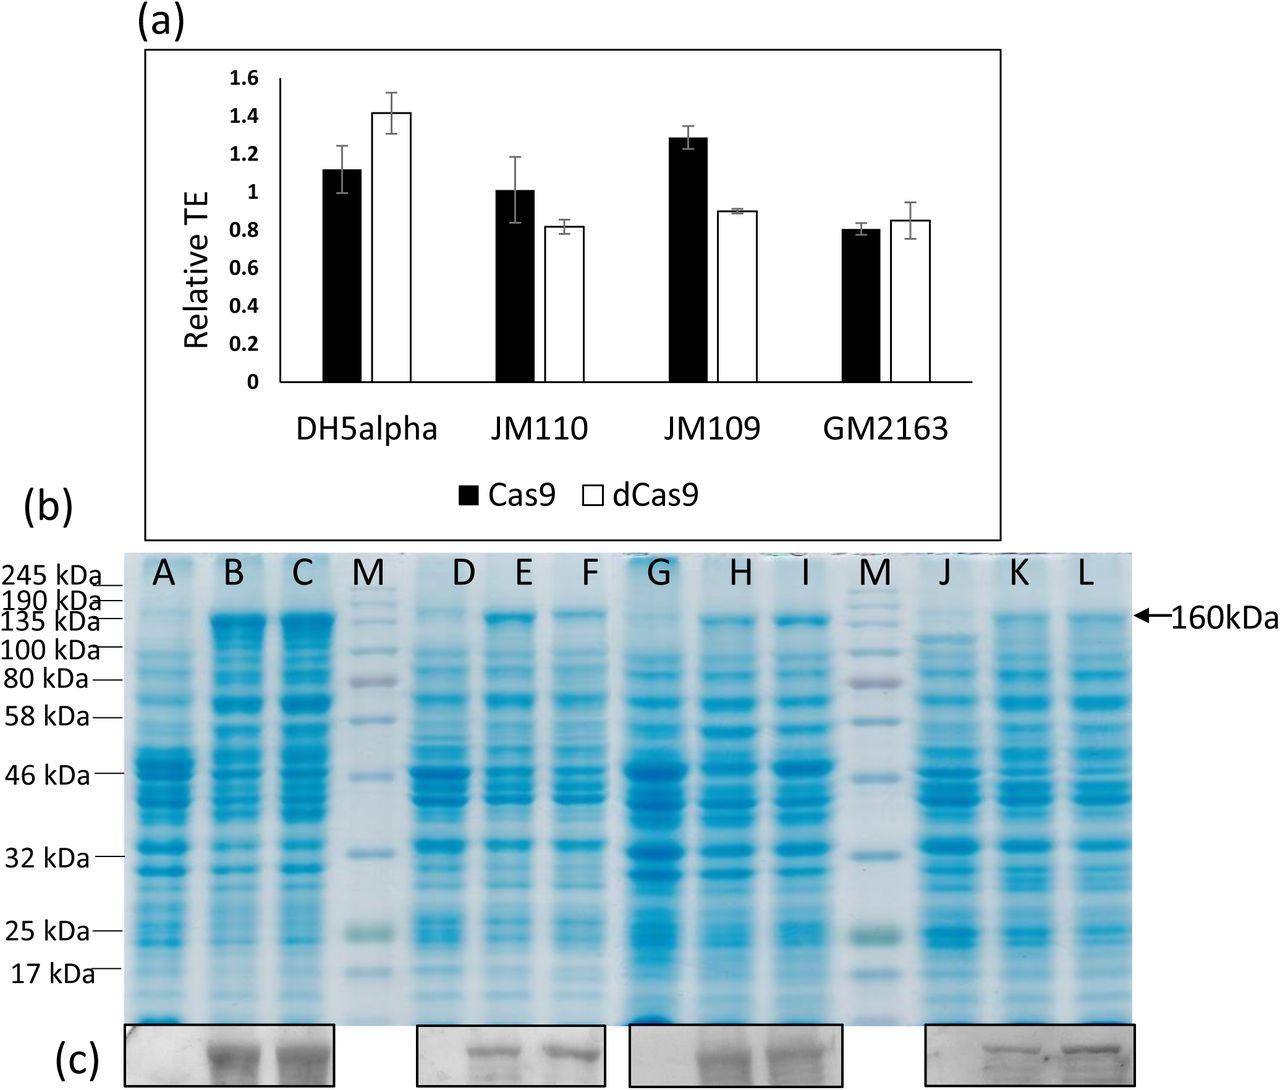 Cas9/dCas9 associated toxicity in <t>E.</t> <t>coli</t> strains that are dam + /dcm + or dam − /dcm − .Four E. coli strains were transformed with pRAD1 or pRA-Cas9 or pRA-dCas9 and transformants were elected on carbenicillin selection plates. The CFU were enumerated to determine TE (a). Results are from experiments repeated four times. (b) <t>Protein</t> extracts from E. coli strains, DH5alpha (Lanes A, B,C), JM110 (Lanes D, E, F), JM109 (Lanes G, H, I) and GM2163 (Lanes J, K,L) carrying pRAD1 (Lanes A, D, G and J) or pRA-Cas9 (Lanes B, E, H and K) or pRA-dCas9 (Lanes C, F, I and L) were separated by gel electrophoresis and stained with Coomassie Brilliant Blue (b) or developed for Western blot using Anti-Cas9 antibody (c).